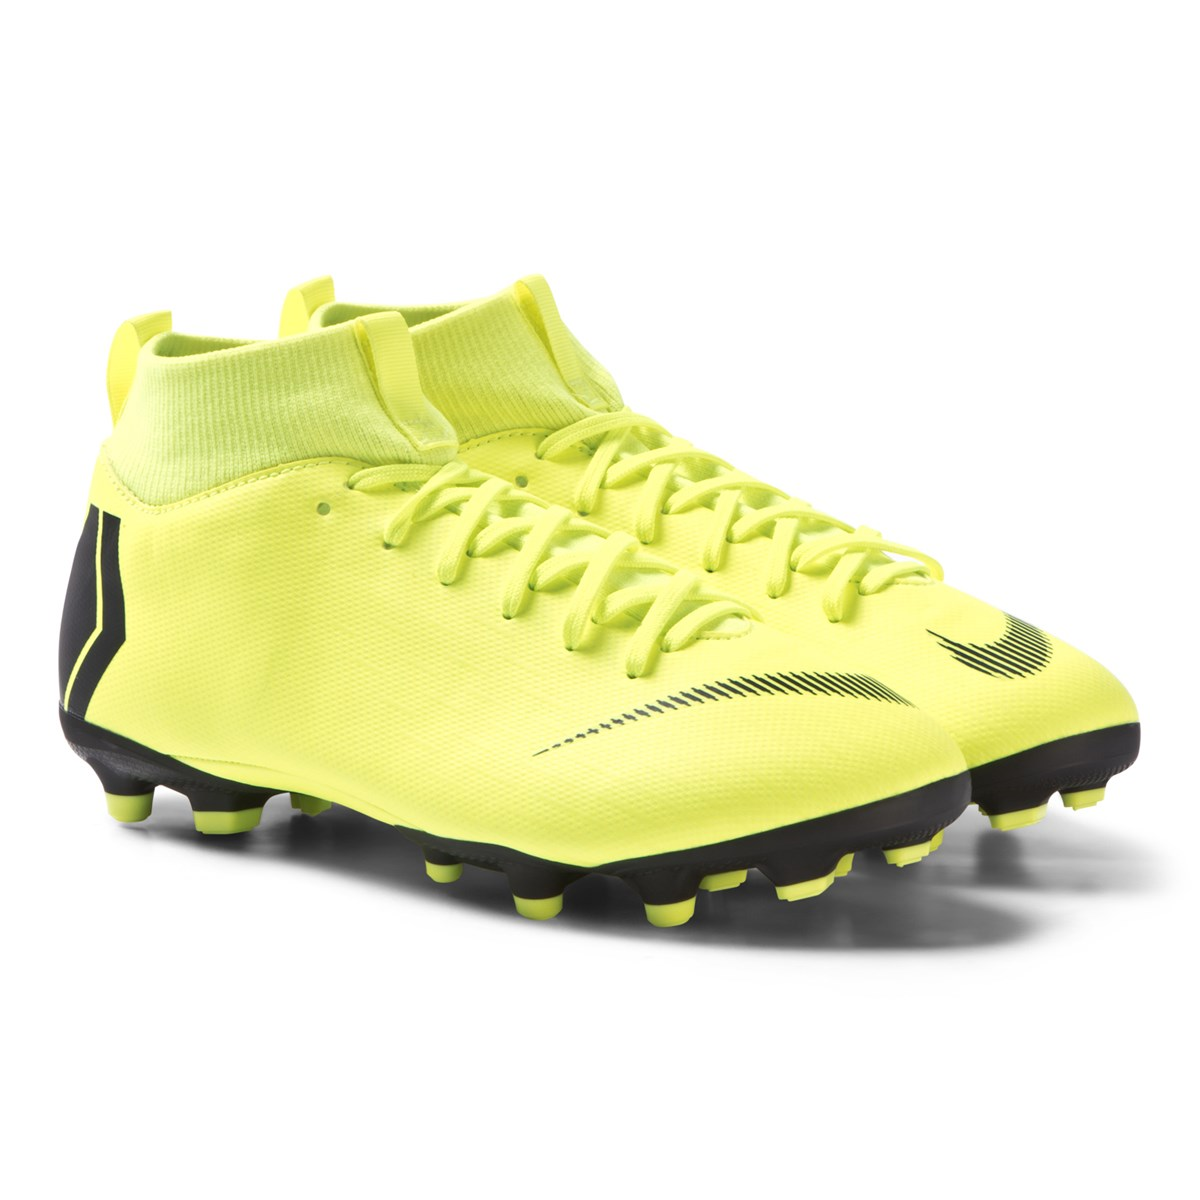 separation shoes dcad6 ef931 NIKE - Yellow Superfly 6 Academy Multi-Ground Soccer Boots - Babyshop.com